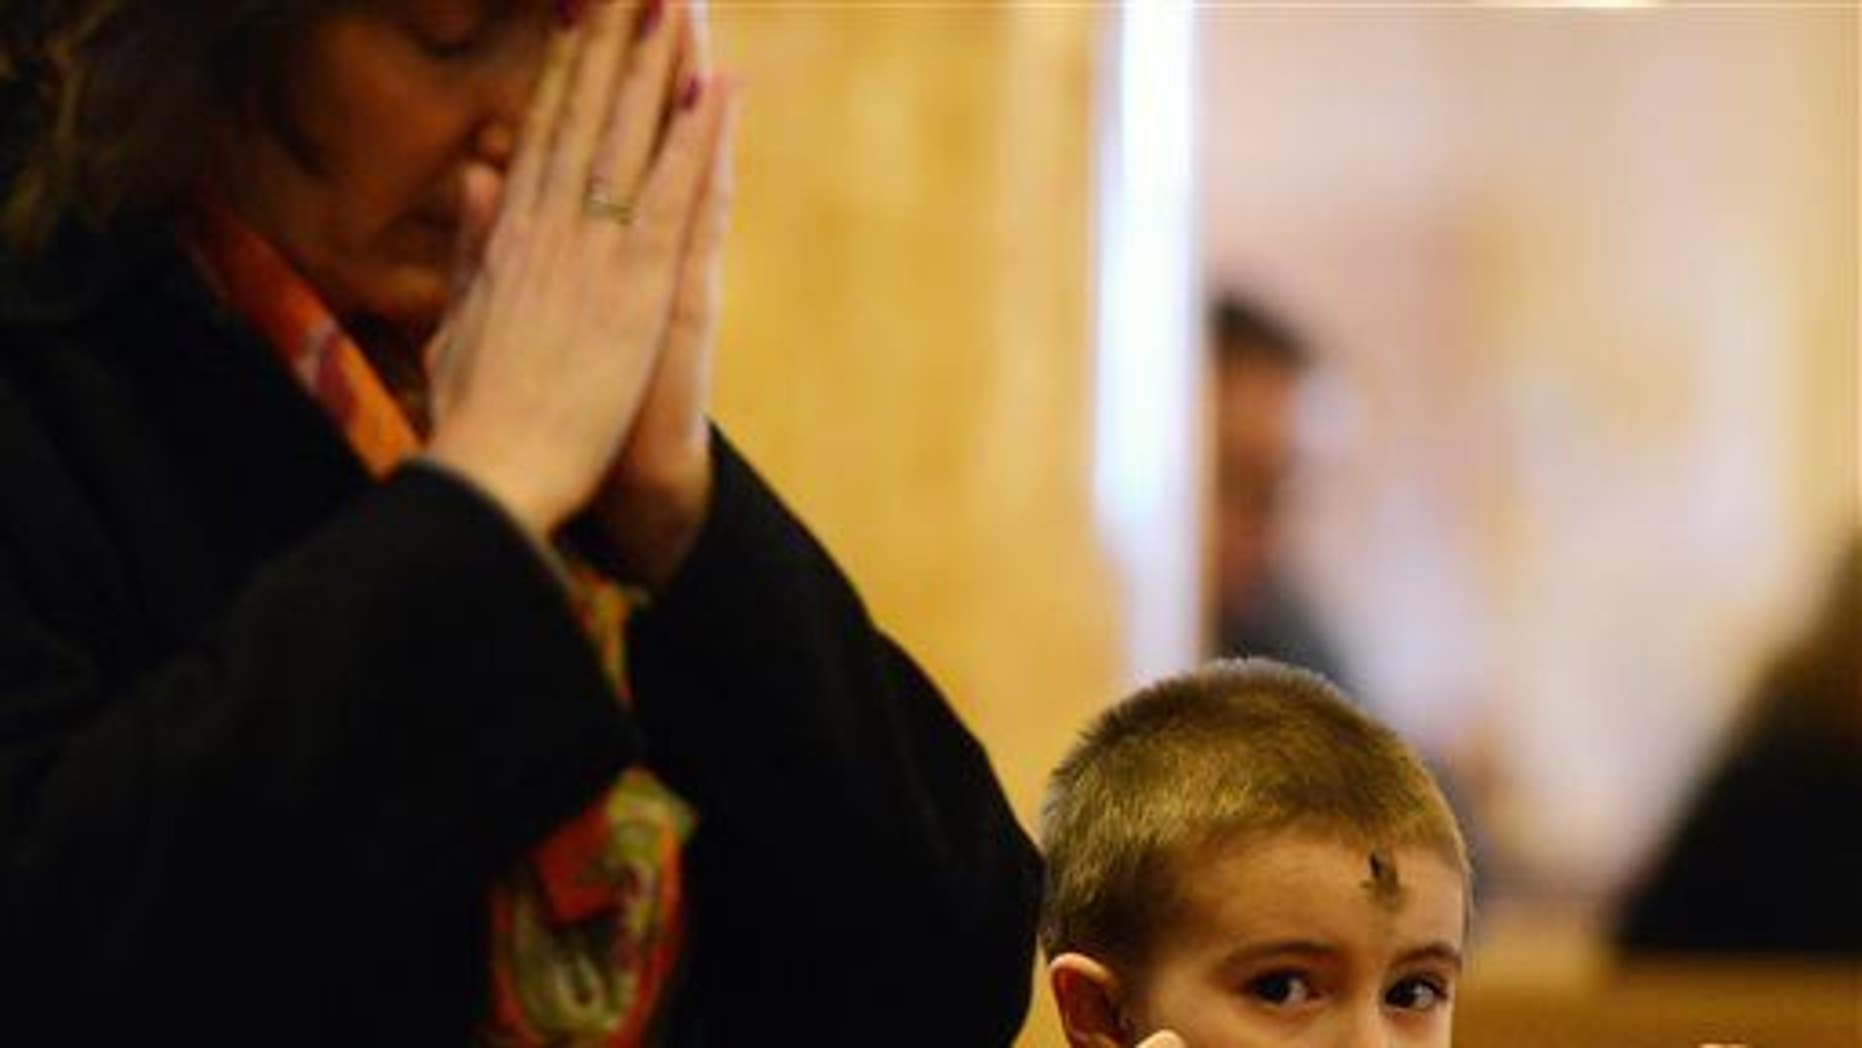 Michelle Commisso and her grandson Christian Vella, 5, attend an Ash Wednesday service at St. Mary of Mount Carmel/Blessed Sacrament Church, Wednesday, Feb. 18, 2015, in Utica, N.Y. (AP Photo/Observer-Dispatch, Mark DiOrio)  ROME OUT